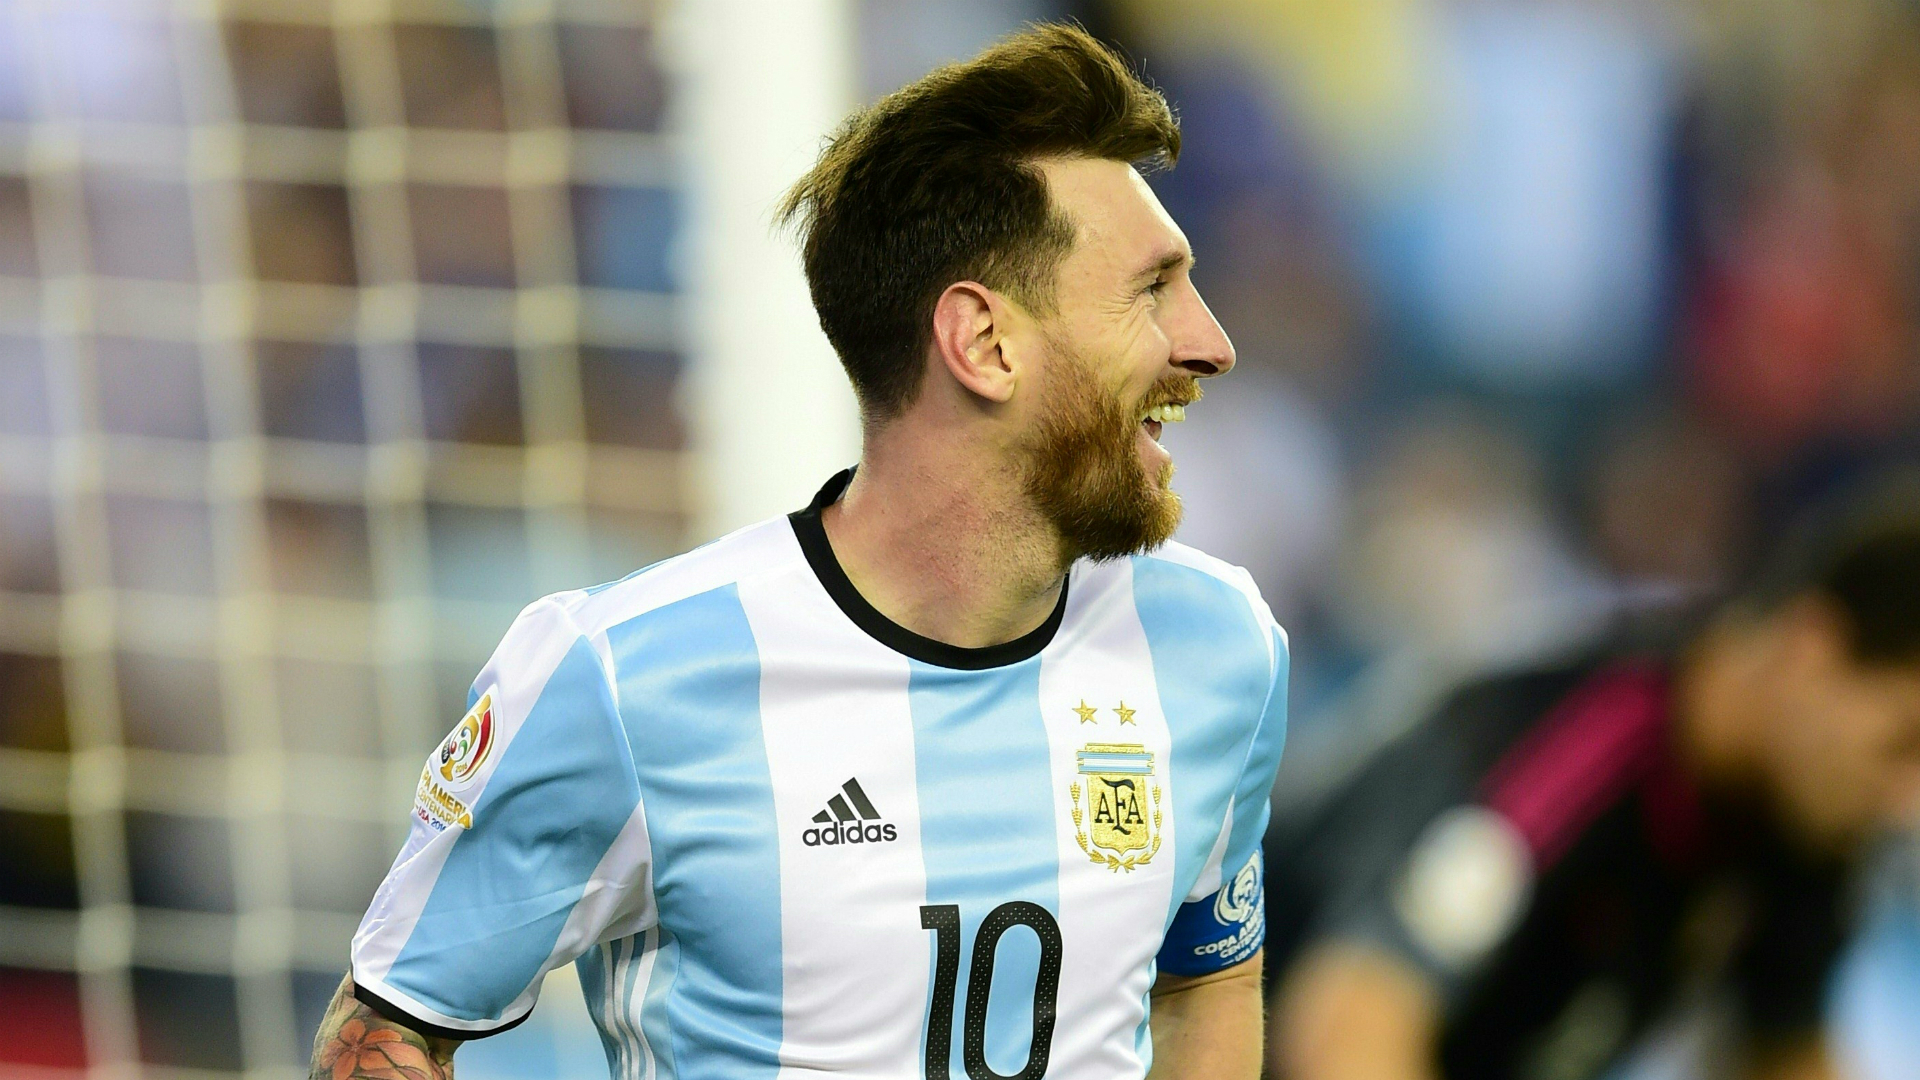 Full Smile Messi Face pics